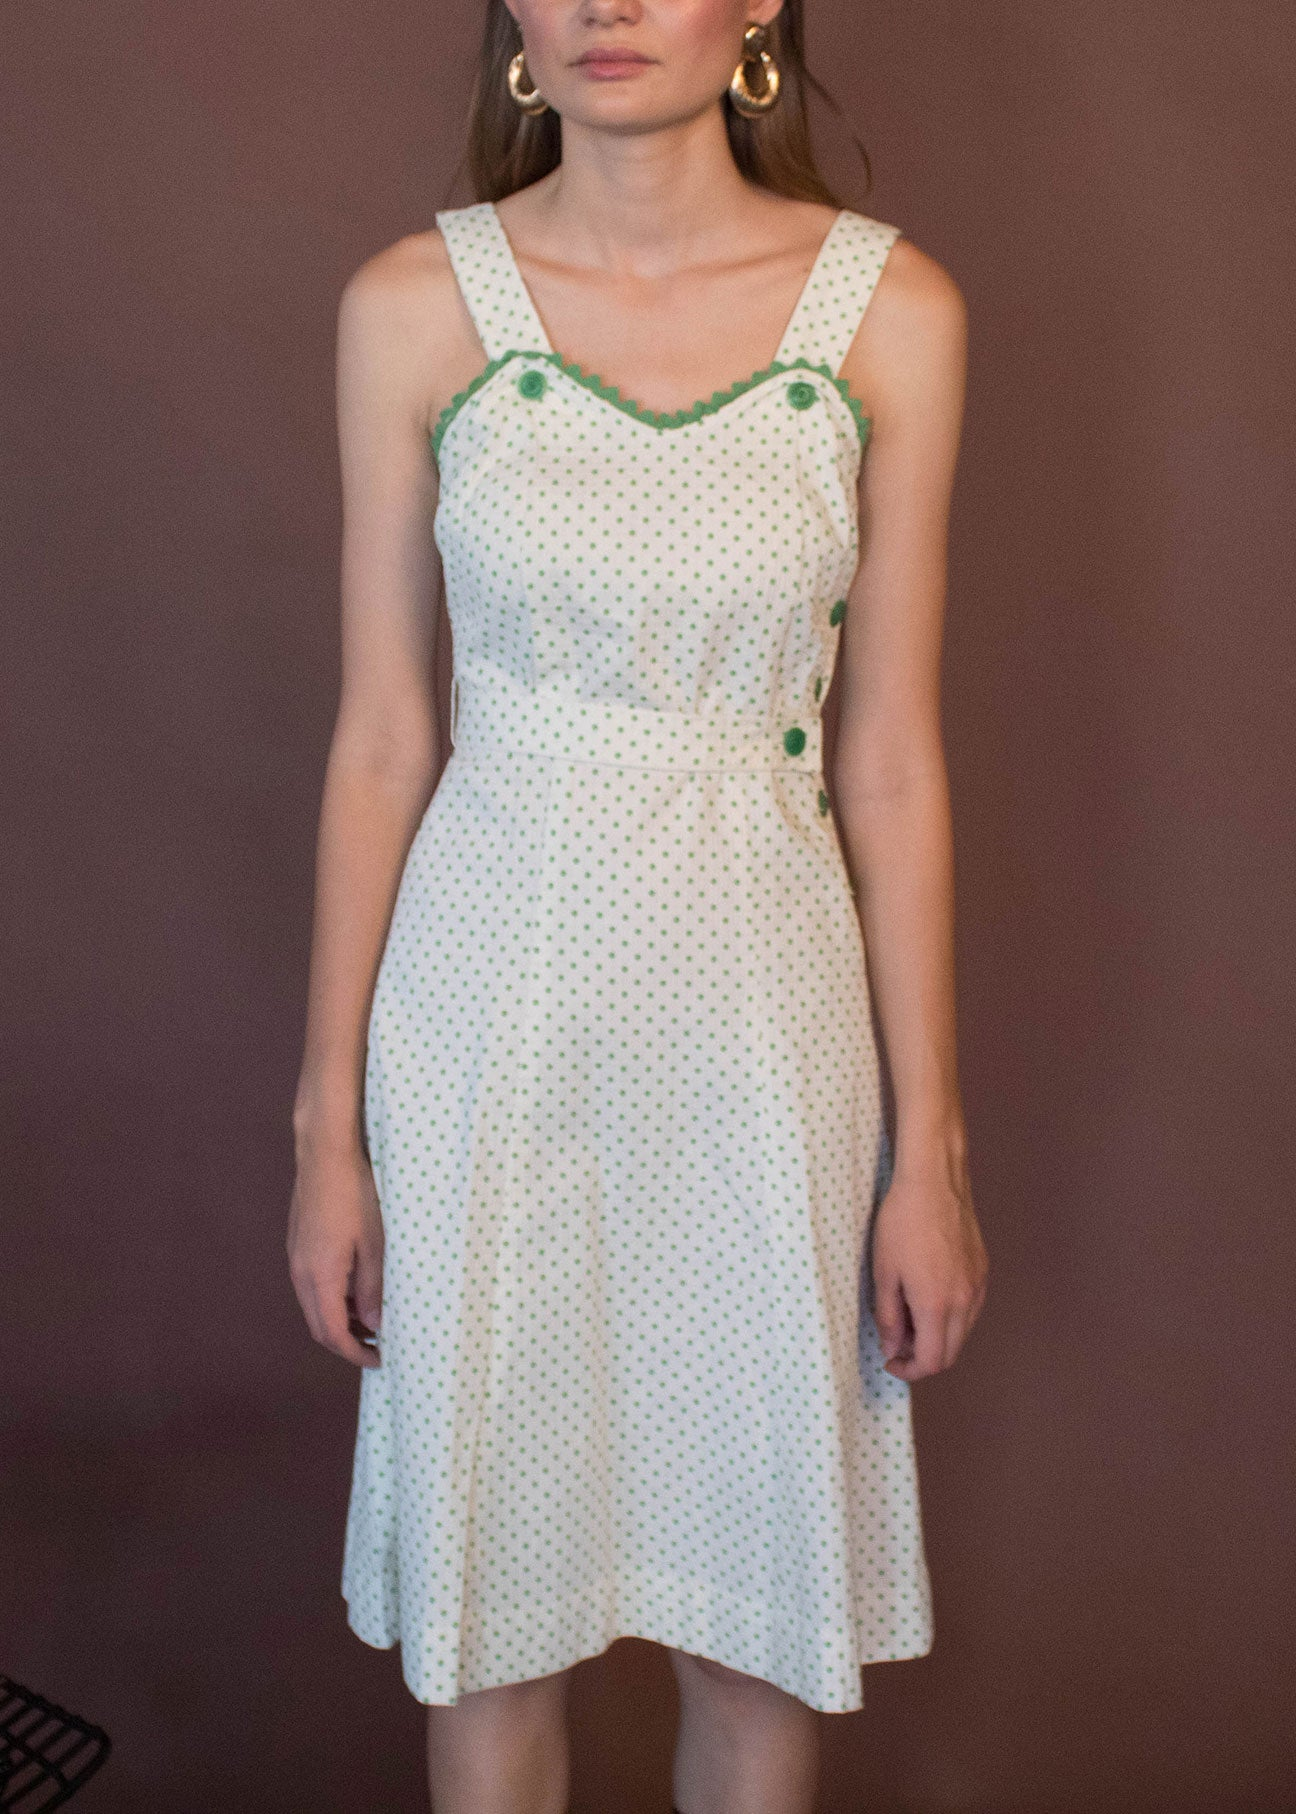 40s Polka Dot Dress